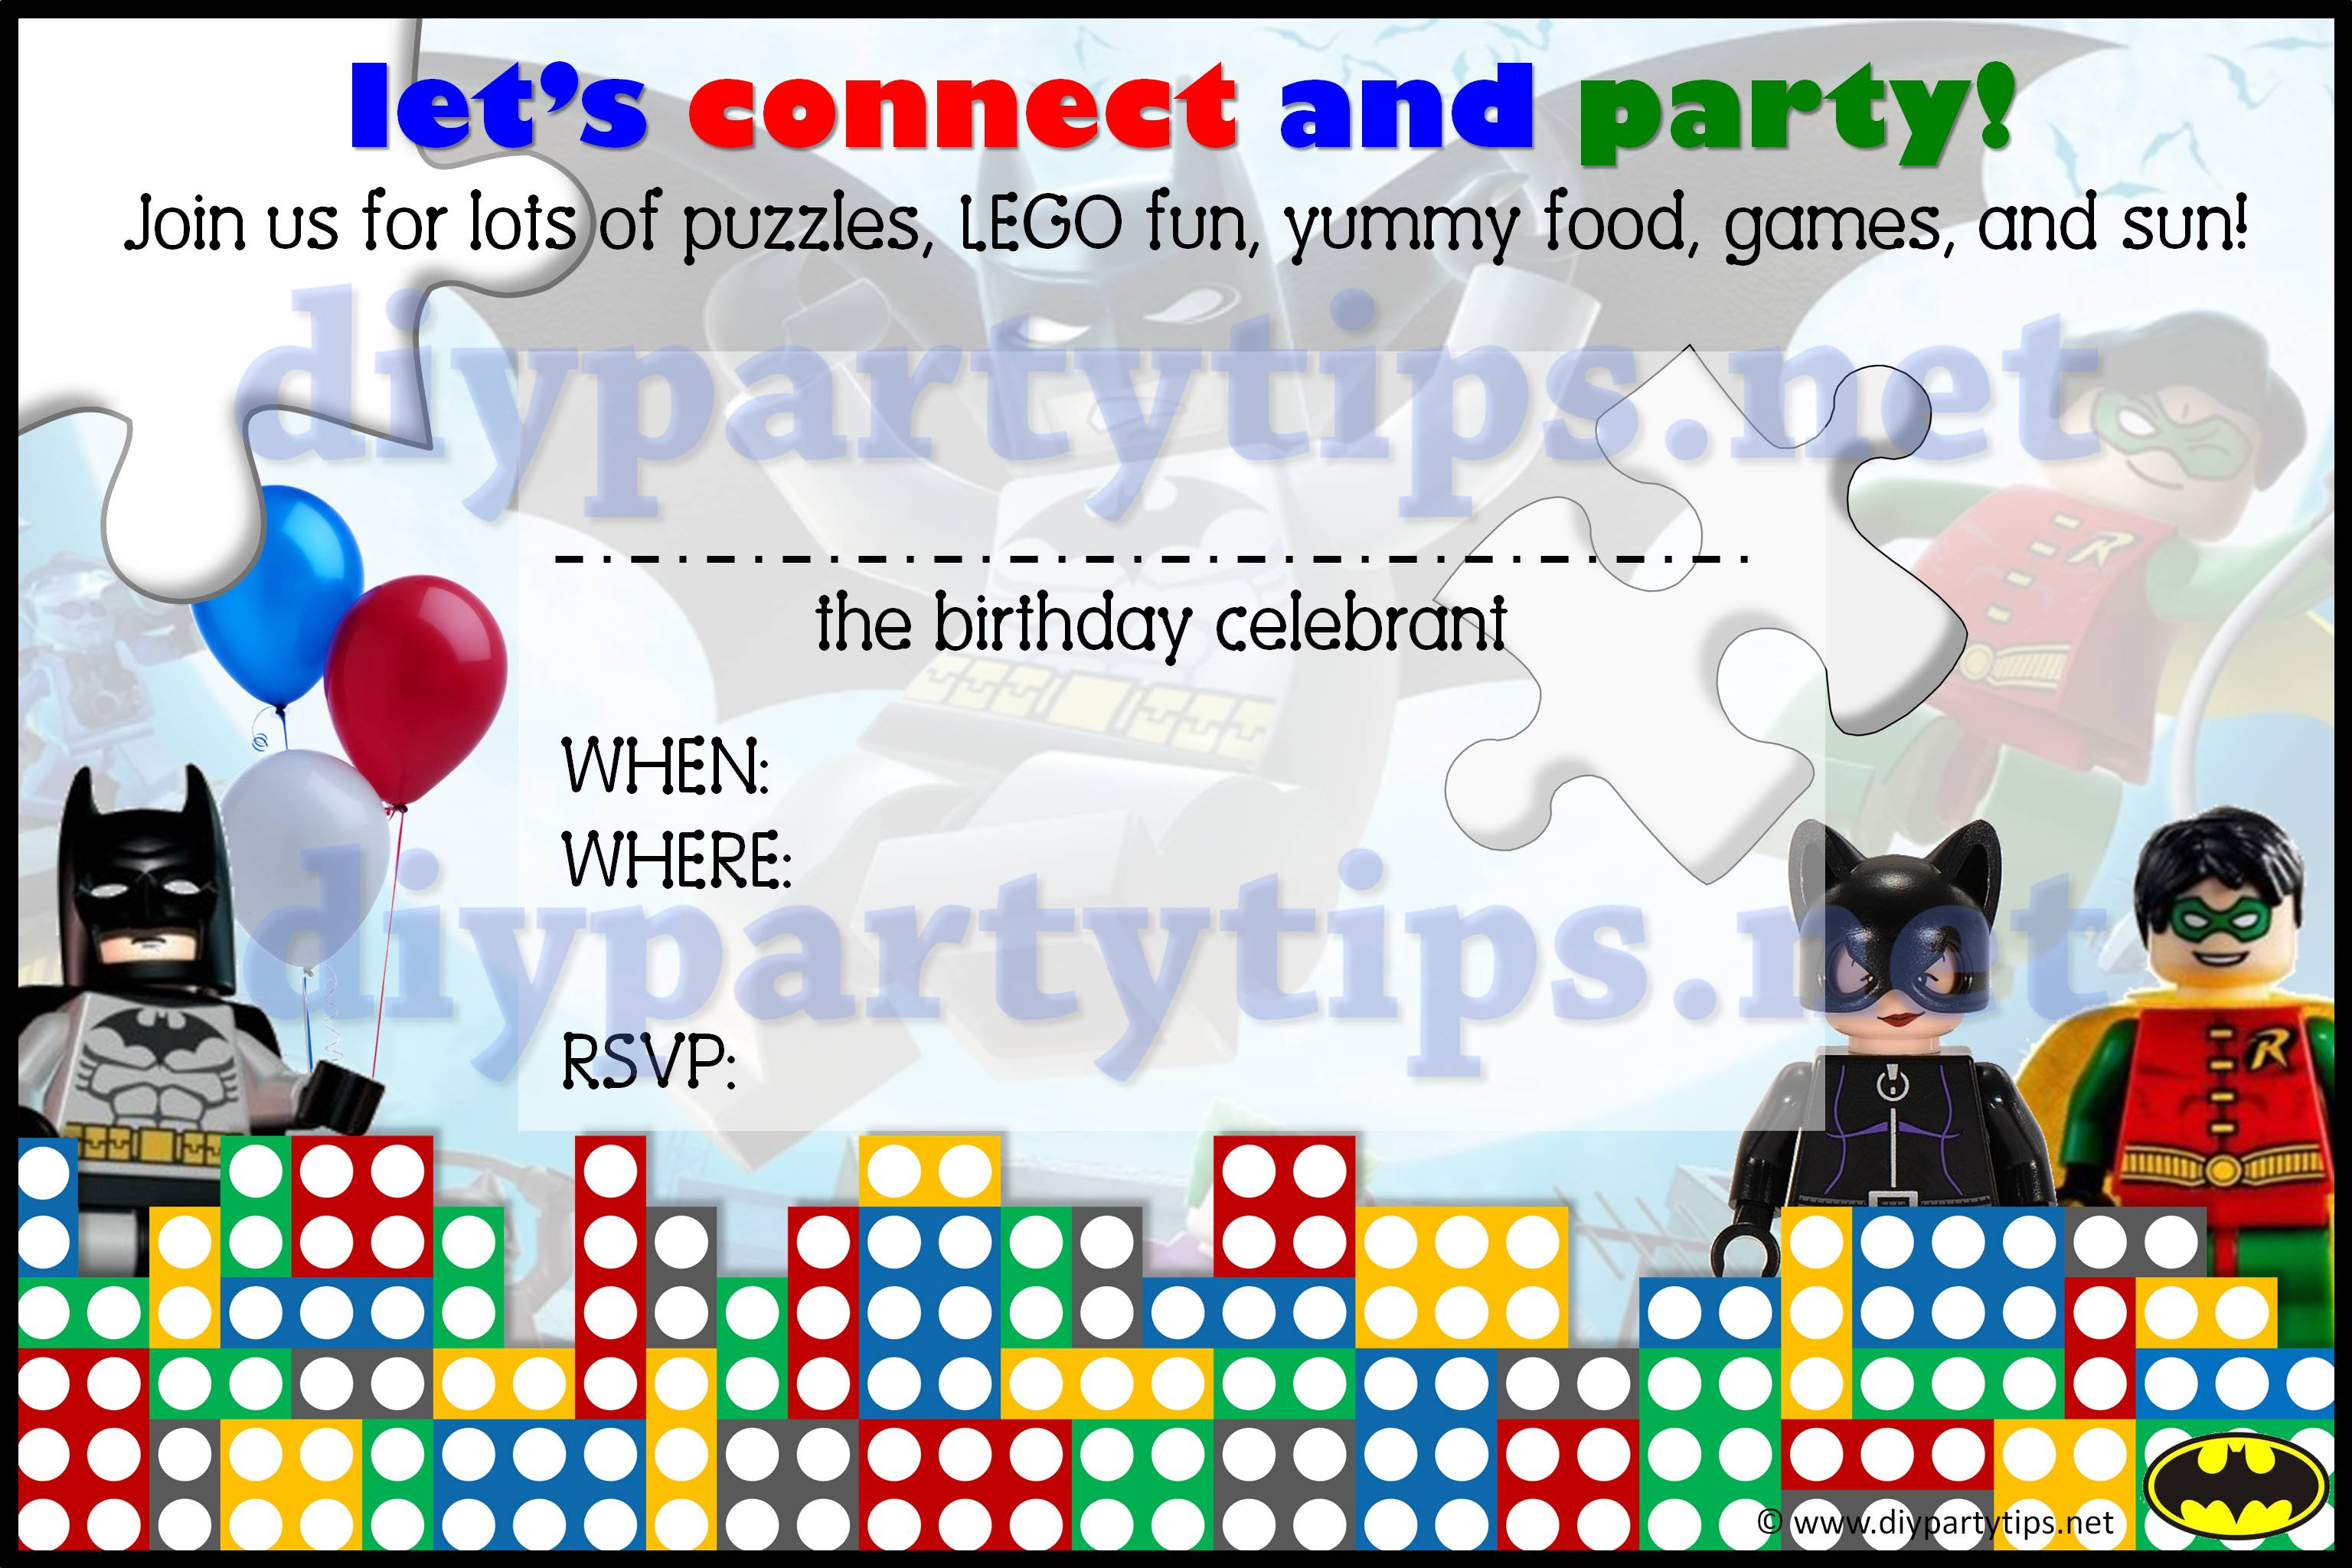 spy birthday party invitation template free ; Lego-Birthday-Invitation-Template-Lolas-DIY-Party-Tips-Watermark